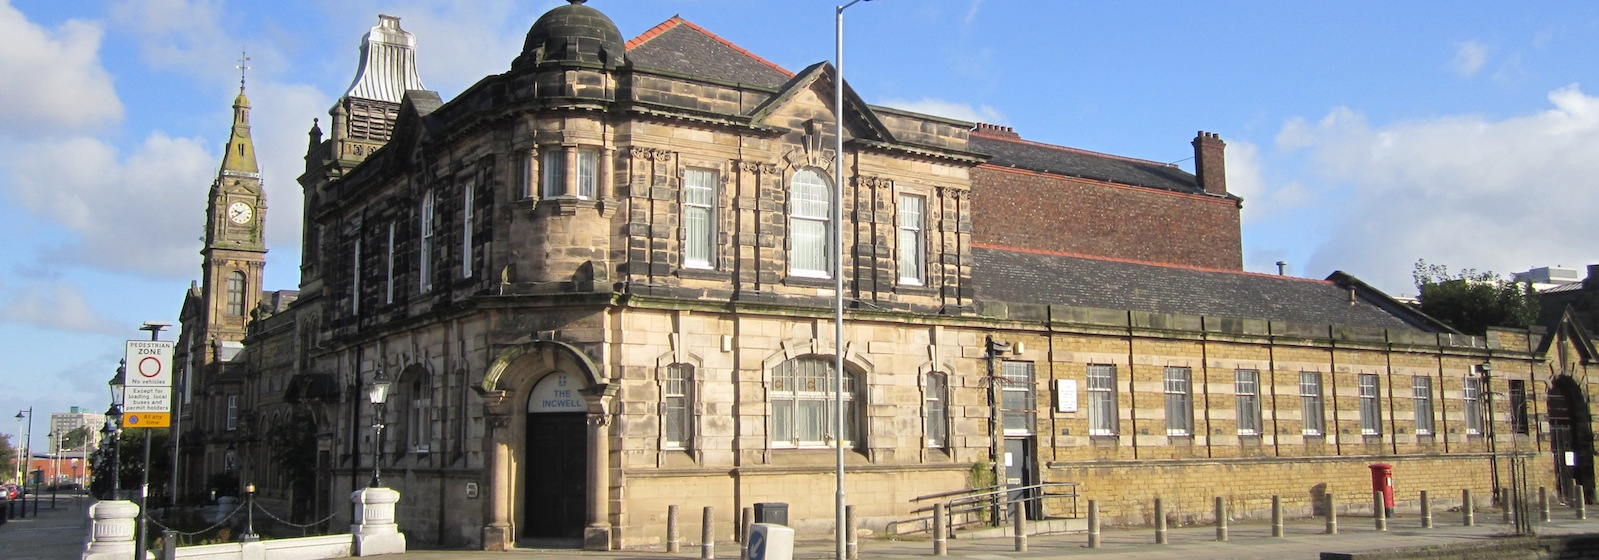 Bootle_Town_Hall_(22)